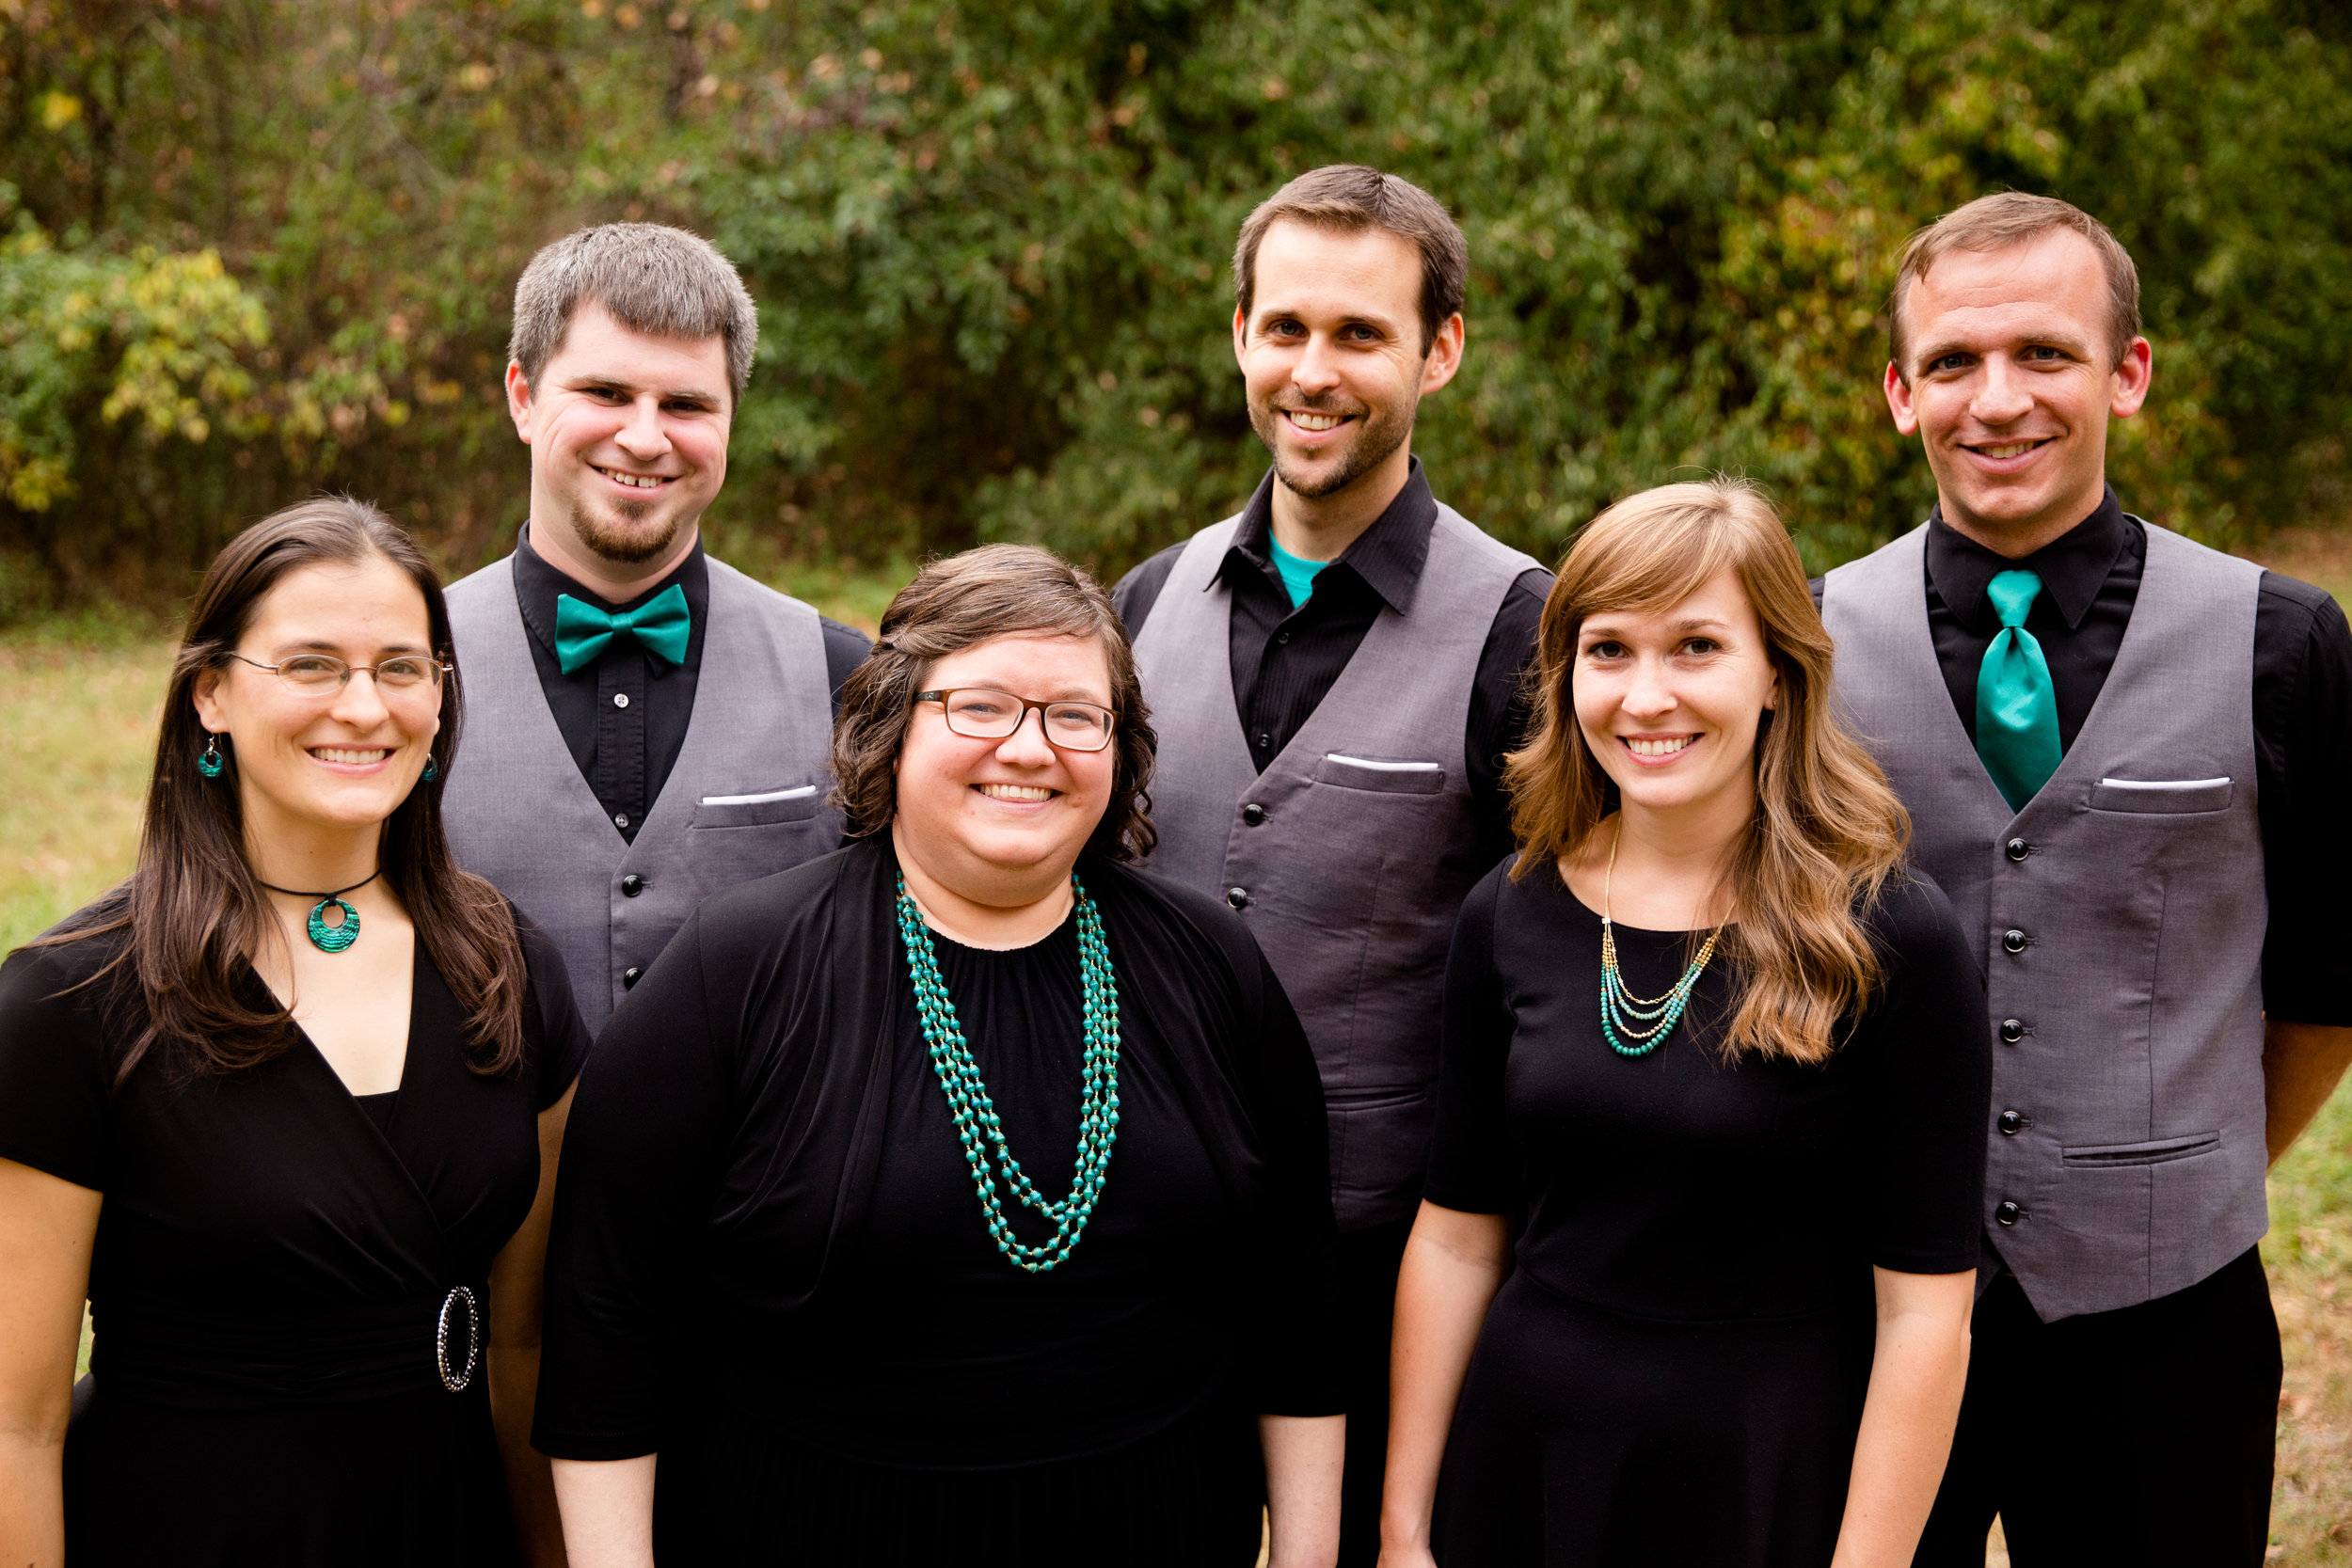 Good Company - Good Company is a six-member a cappella group based out of the Shenandoah Valley.  They began rehearsing together in the Fall of 2013 and have enjoyed singing a wide variety of music since then. Good Company released their first album, Awake, in December 2014 and their 1st Christmas album, From the Heart, in December 2016. They were honored to be crowned champions of SVCC's First Shenandoah Valley Sing Off in 2017 and are excited to participate again in 2018.